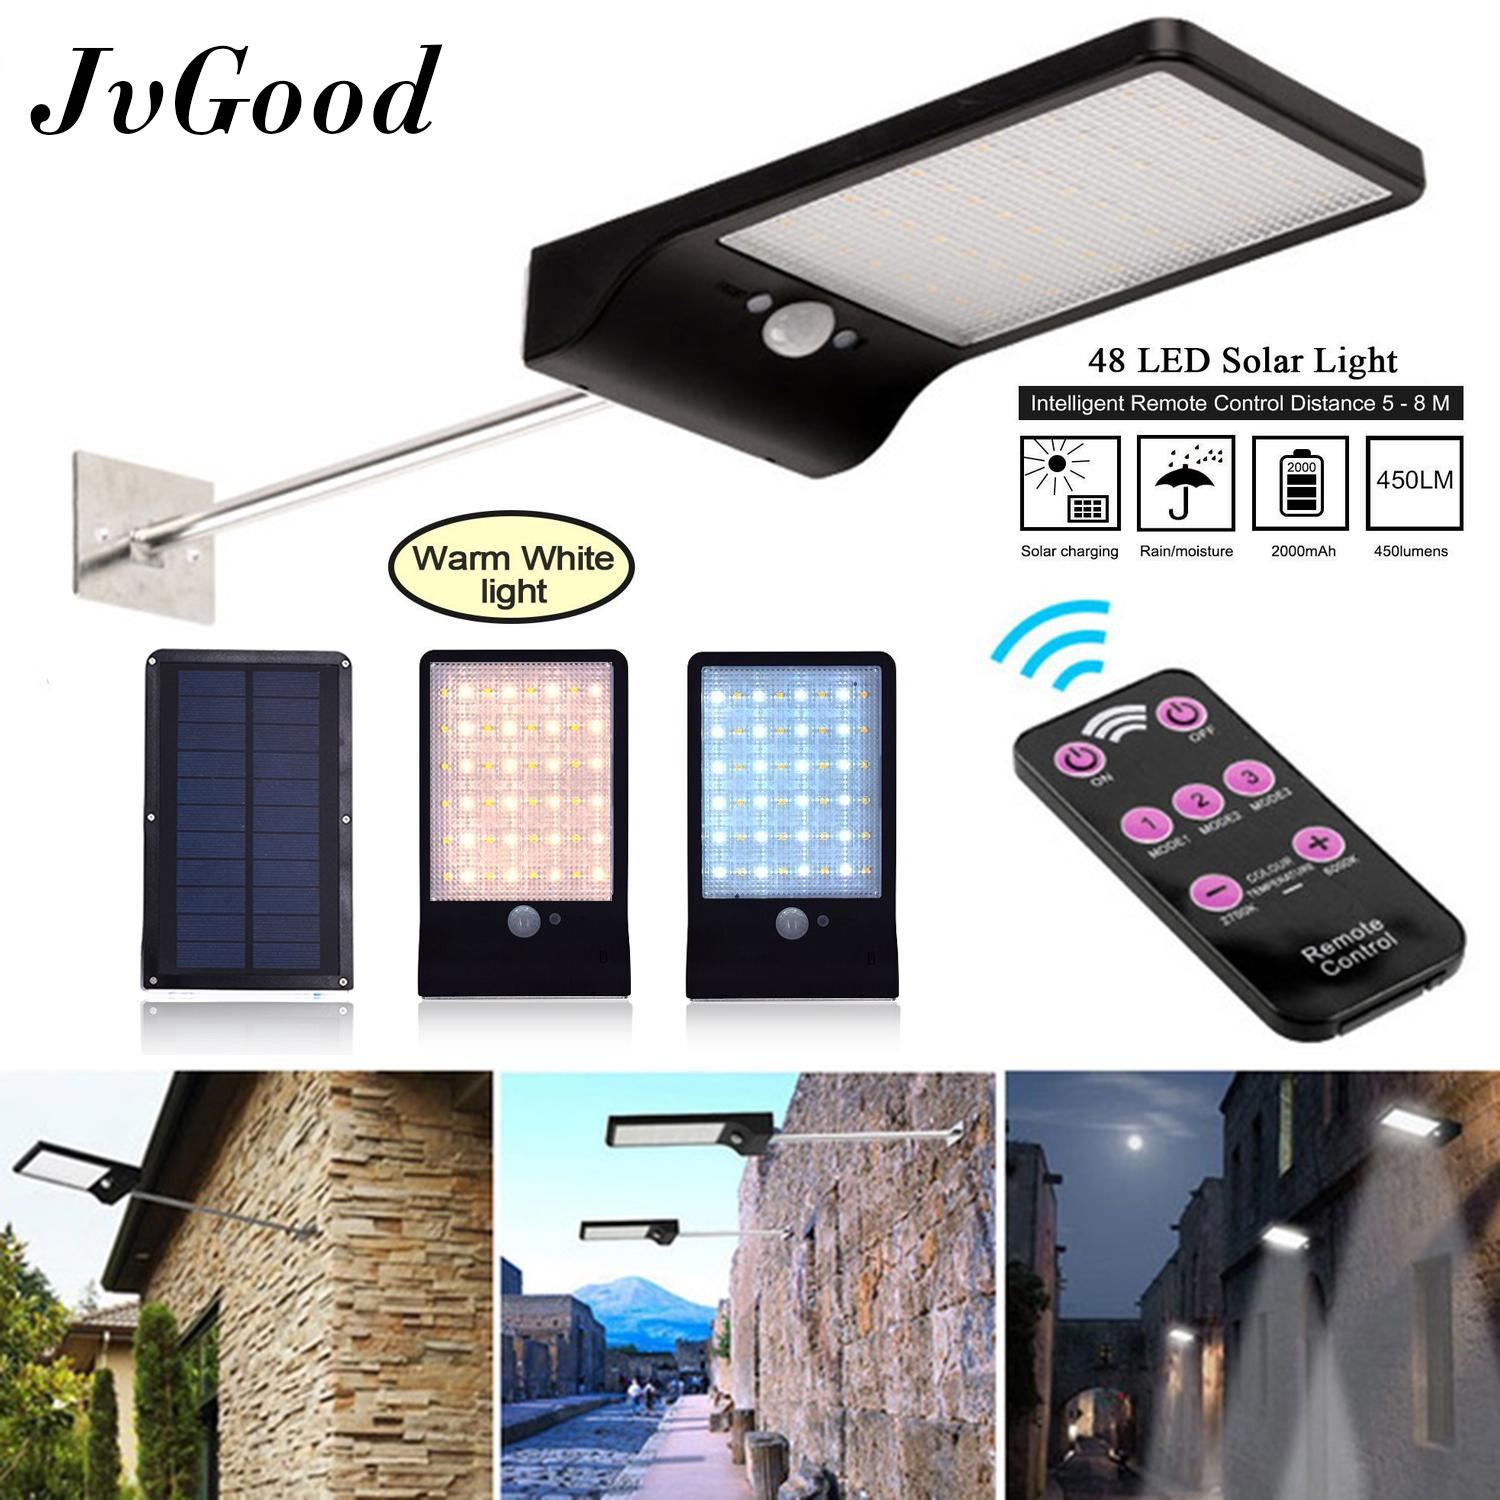 Outdoor Lighting For Sale Lights Prices Brands Review Wiring Motion Sensor In Series Jvgood Upgraded 48 Led Solar Light Waterproof Mounting Pole Garden